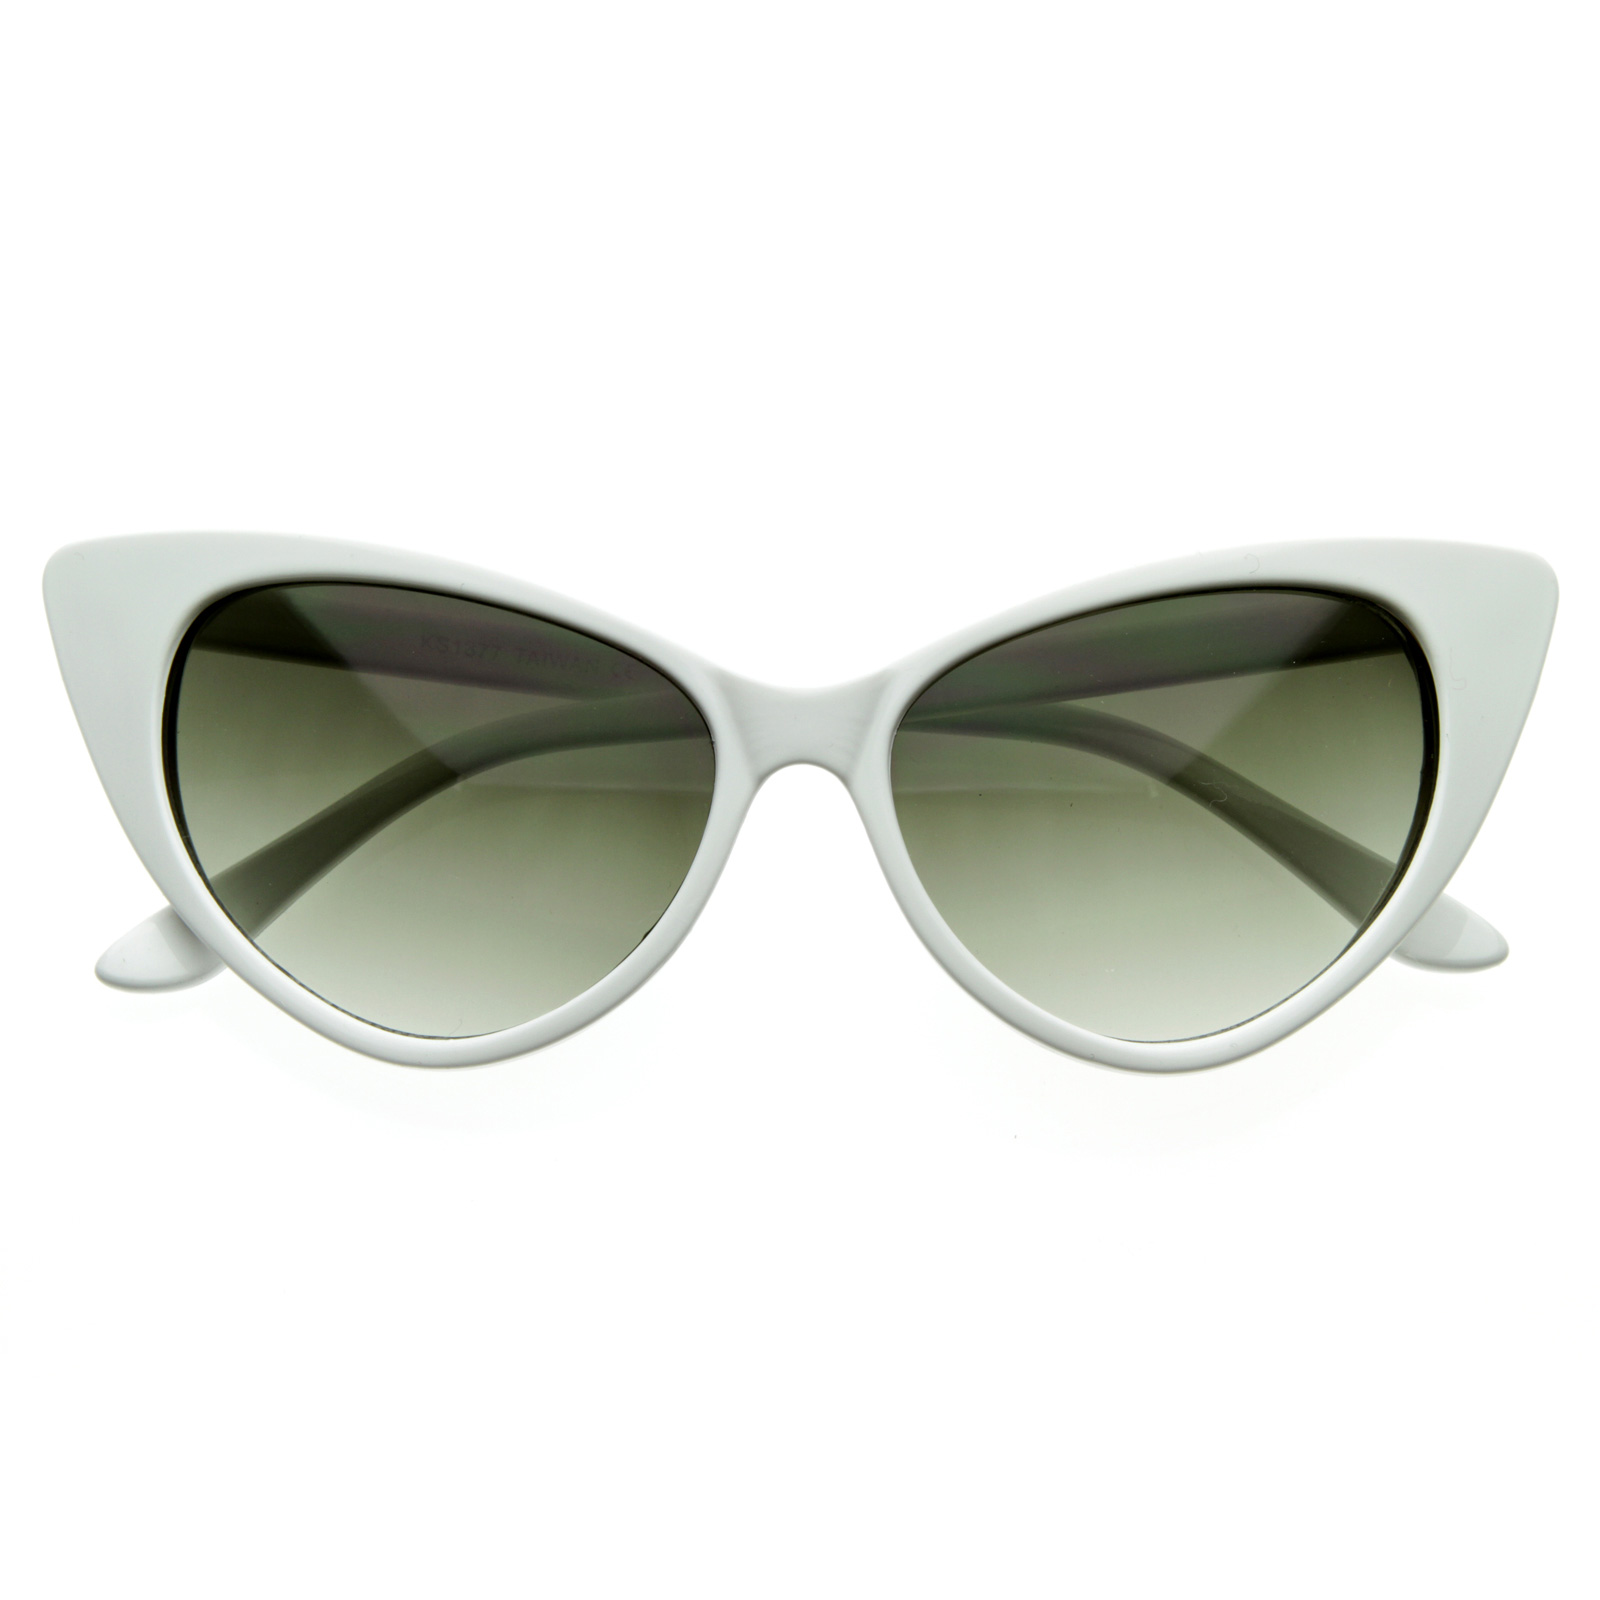 Hot-Tip-Pointed-Vintage-Inspired-Fashion-Sexy-Mod-Chic-Cat-Eye-Sunglasses-8371